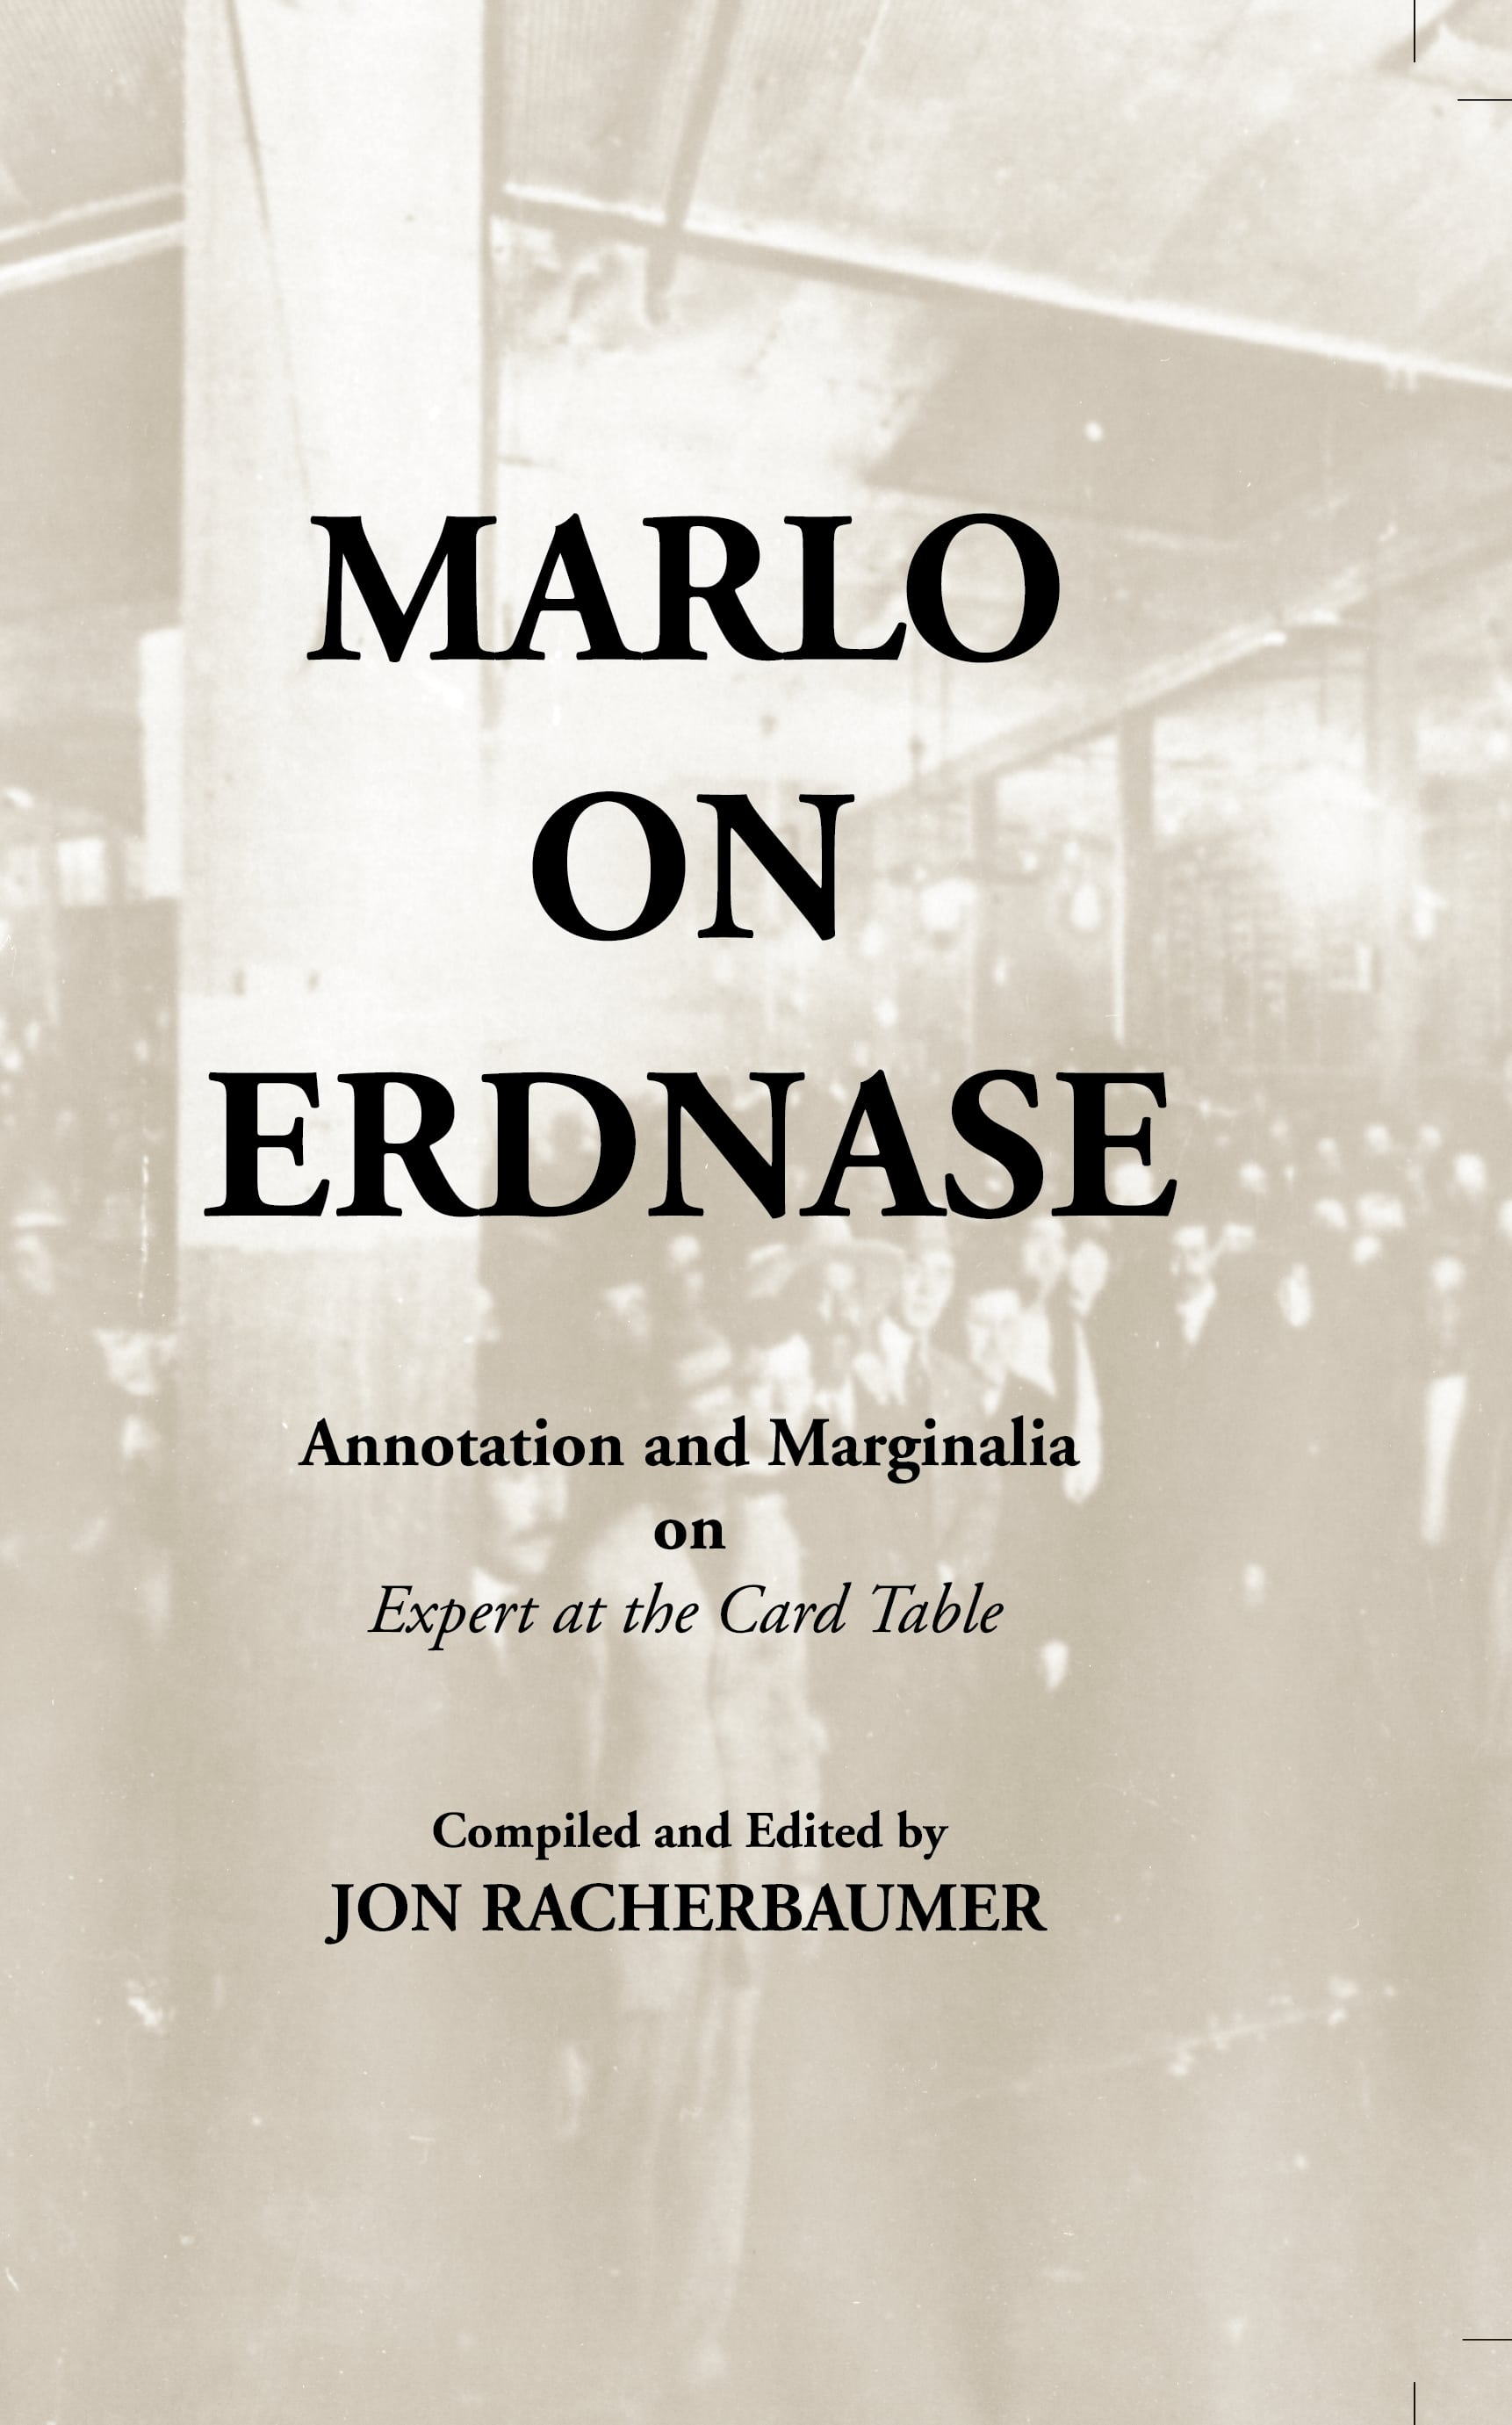 Marlo on Erdnase - Annotation and Marginalia on Expert at the Card Table